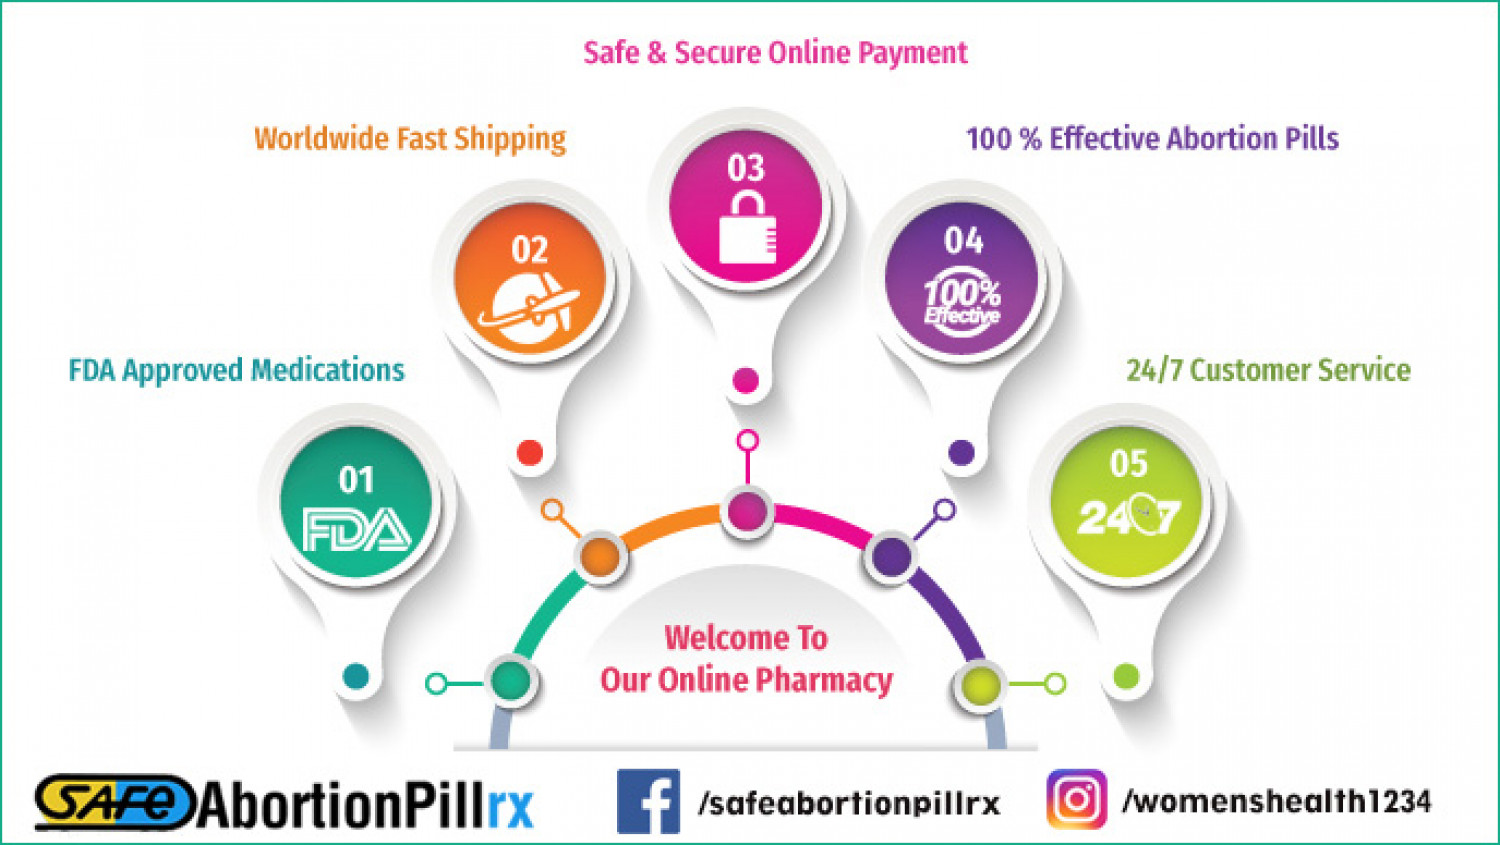 Safeabortionpillrx offers best online pharmacy services Infographic